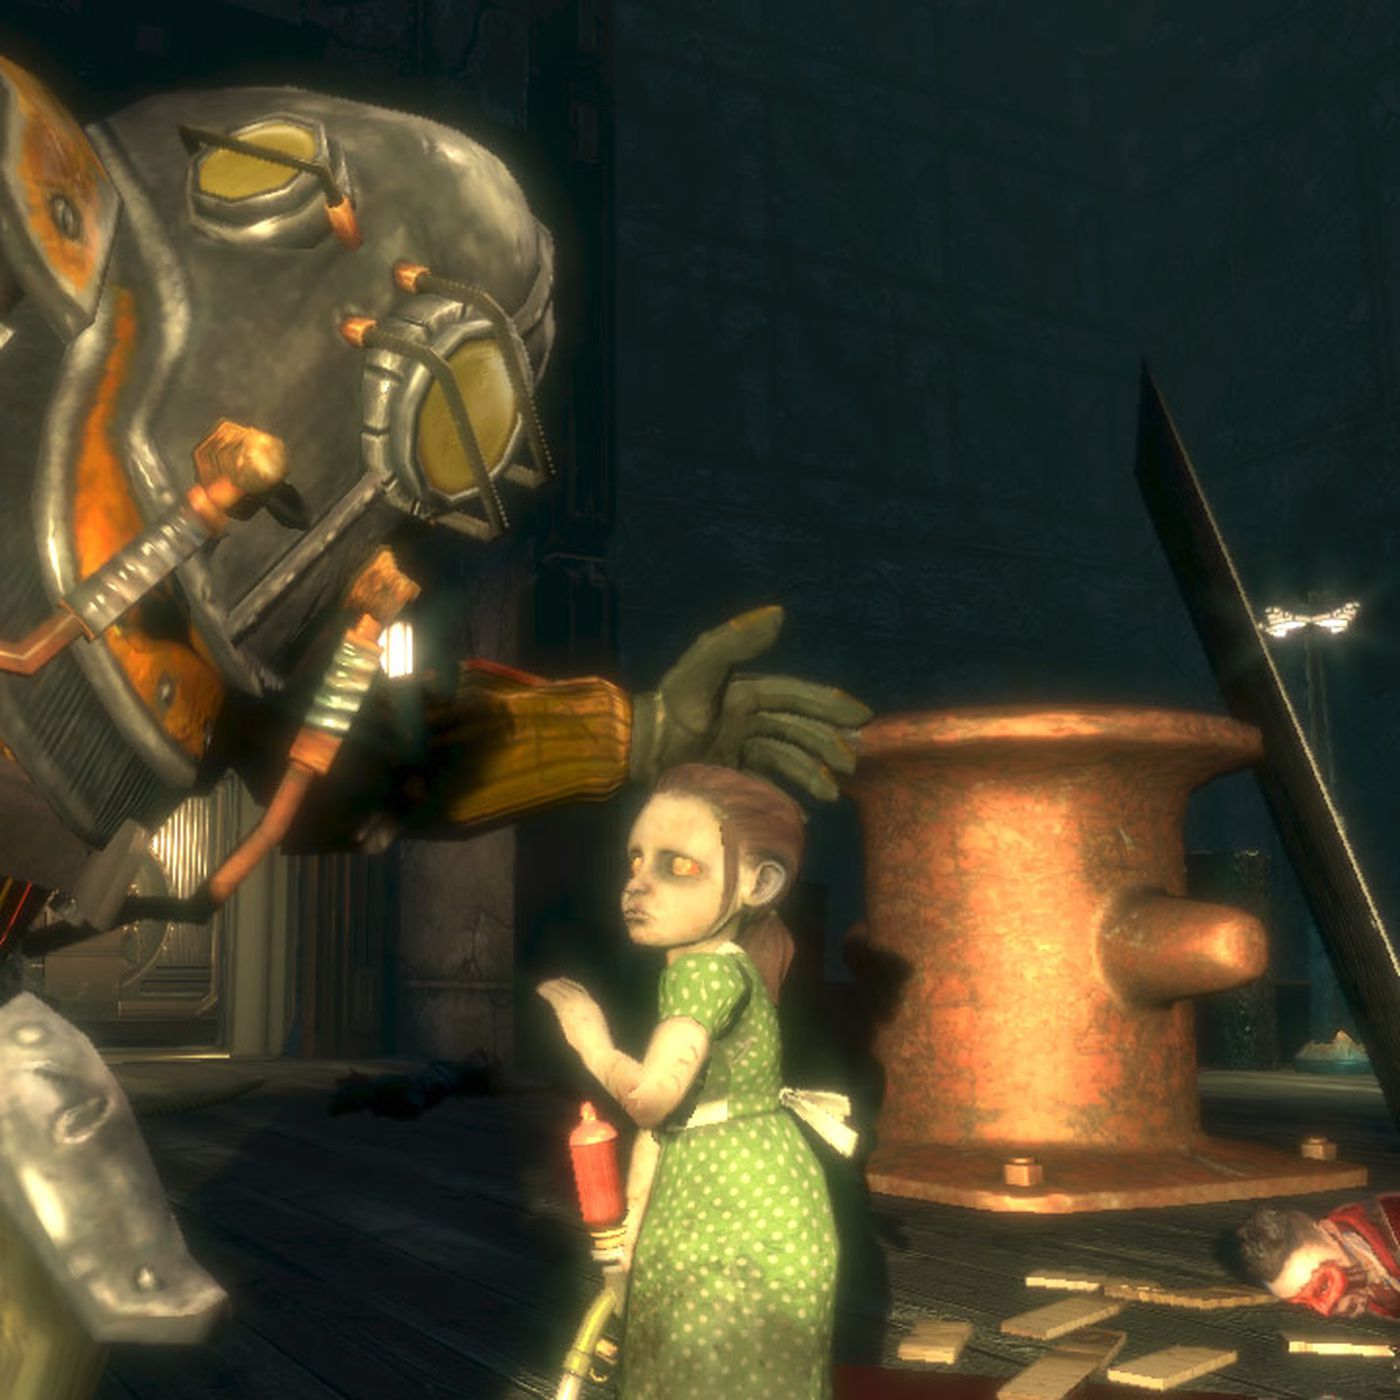 Bioshock Bungled Its Best Chance To Make Play Meaningful Polygon